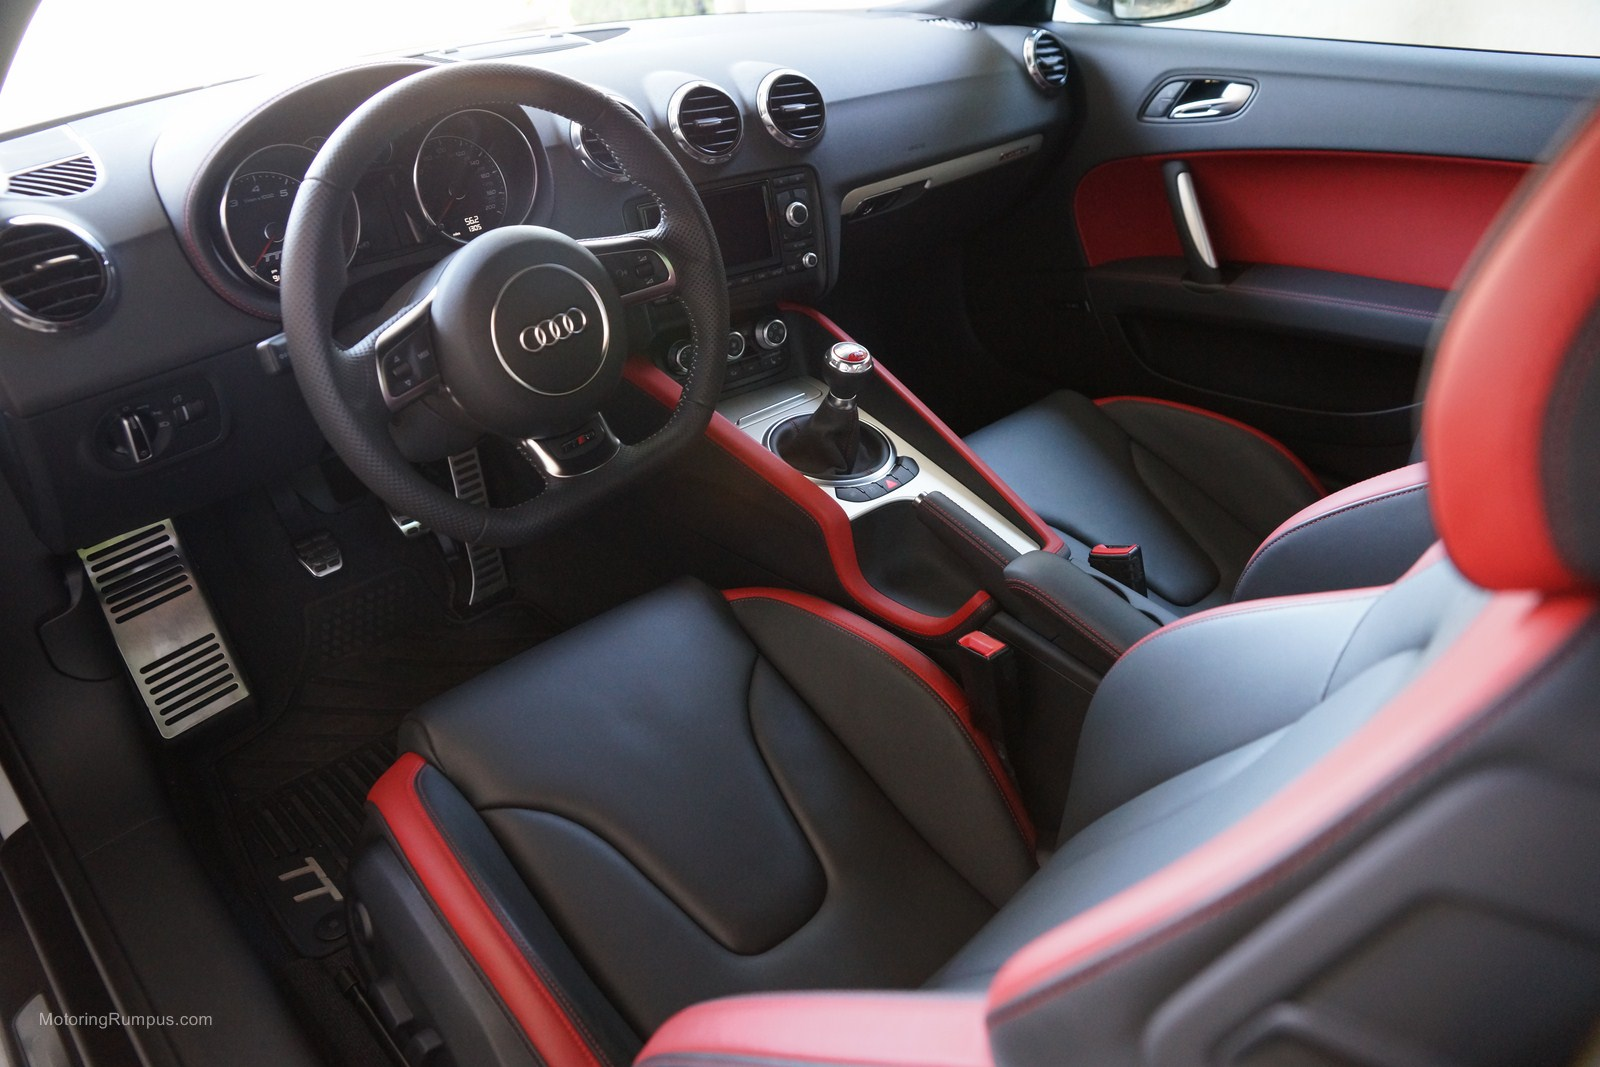 2013 Audi TT RS Exclusive Bicolor Black Crimson Red Interior ... Audi Tt Red Interior on audi tt 2007 interior, audi tt orange interior, 2001 audi tt interior, lexus lfa red interior, bmw 328i red interior, volkswagen cc red interior, nissan altima red interior, audi s6 red interior, bmw z3 red interior, ferrari california red interior, volkswagen eos red interior, jeep grand cherokee red interior, porsche 996 red interior, mazda 6 red interior, ford ranger red interior, audi s8 red interior, mclaren 650s red interior, bmw m3 e46 red interior, dodge ram red interior, nissan versa red interior,